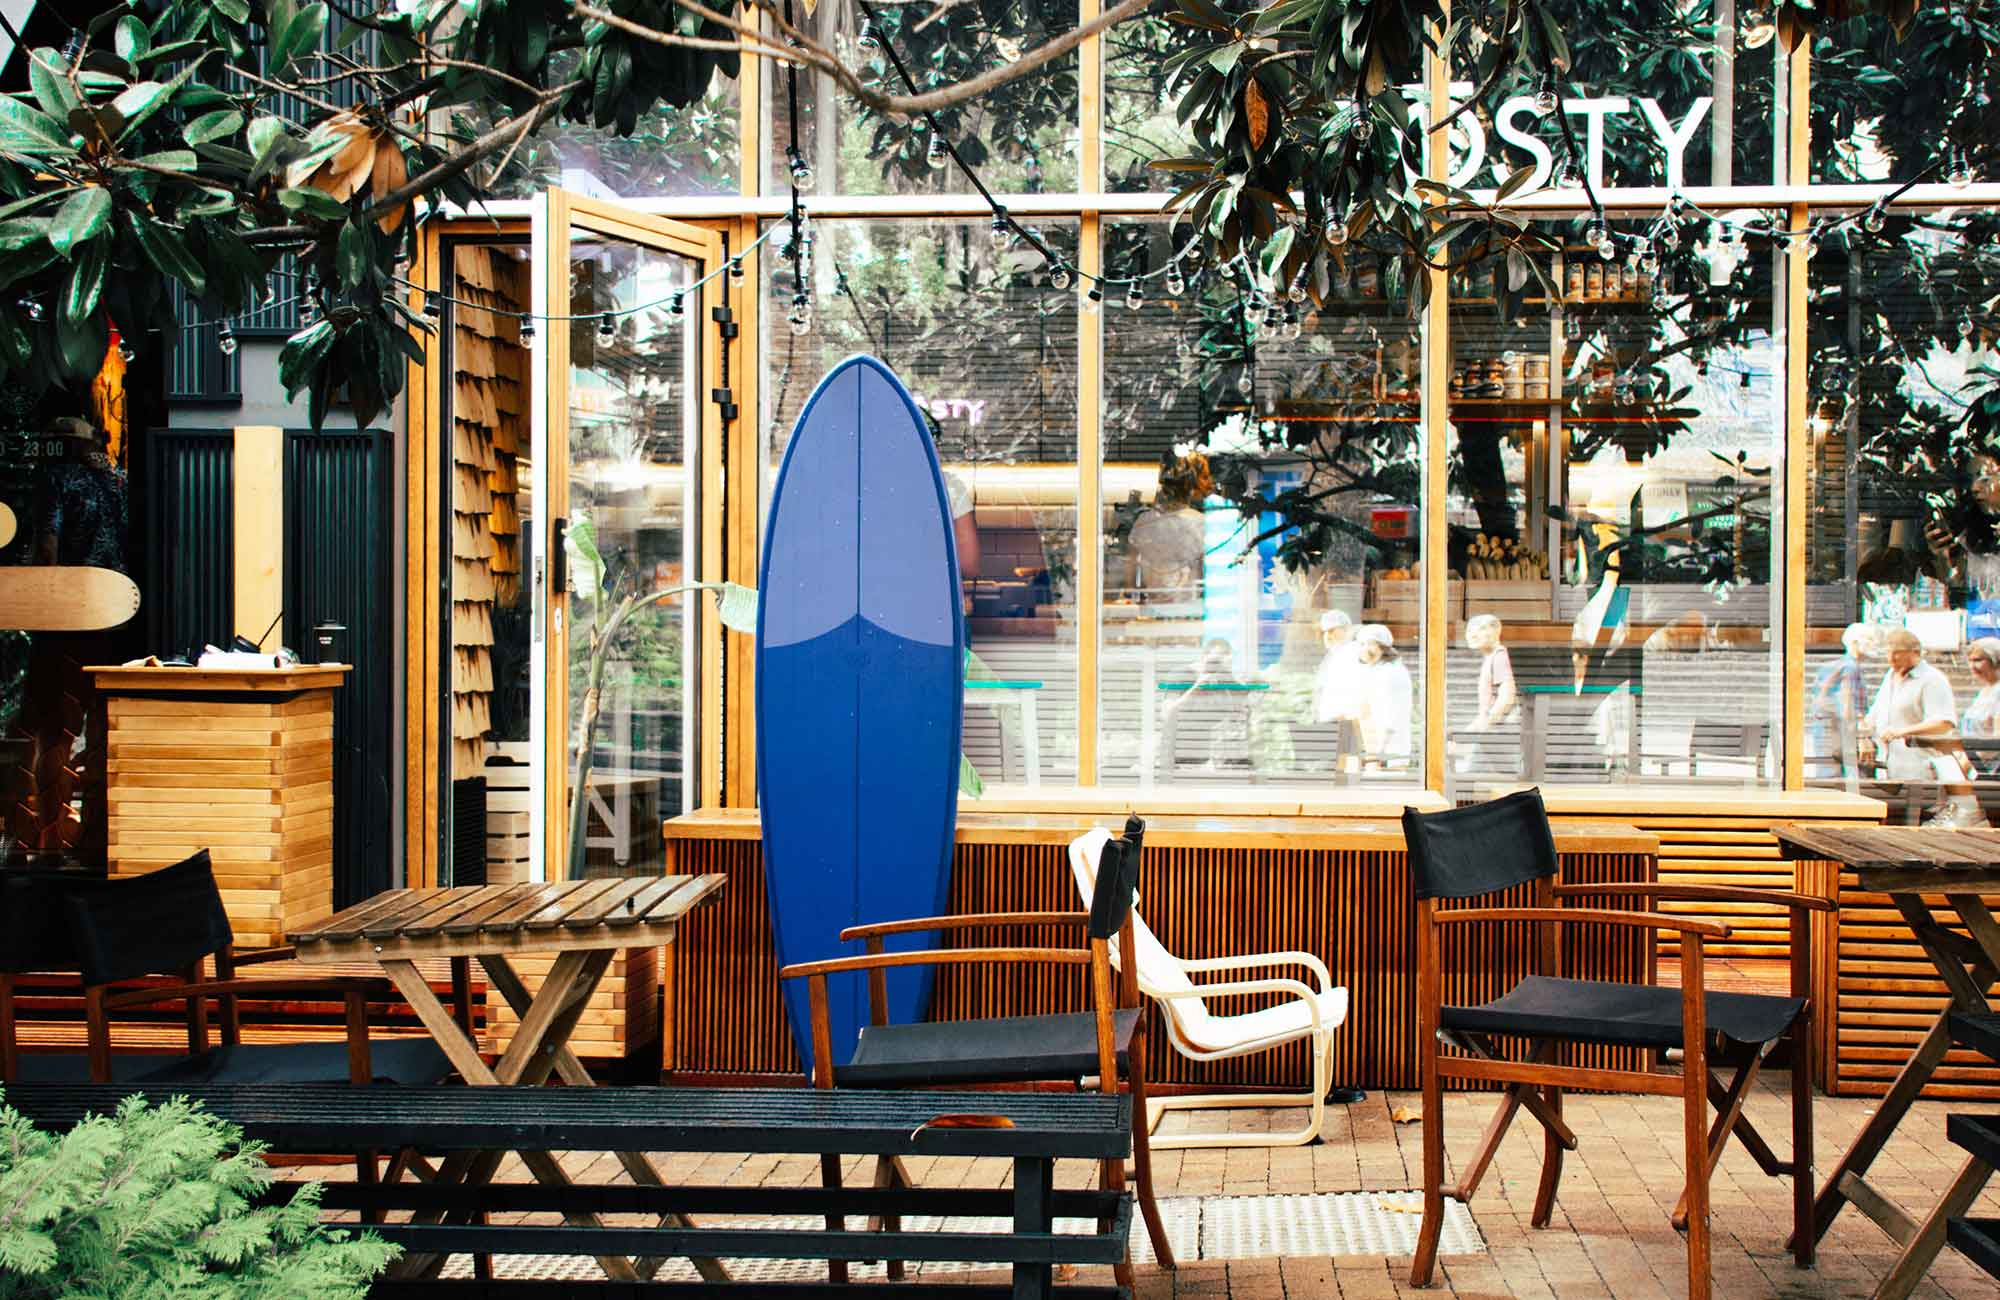 Surfboard as a tool for disruption